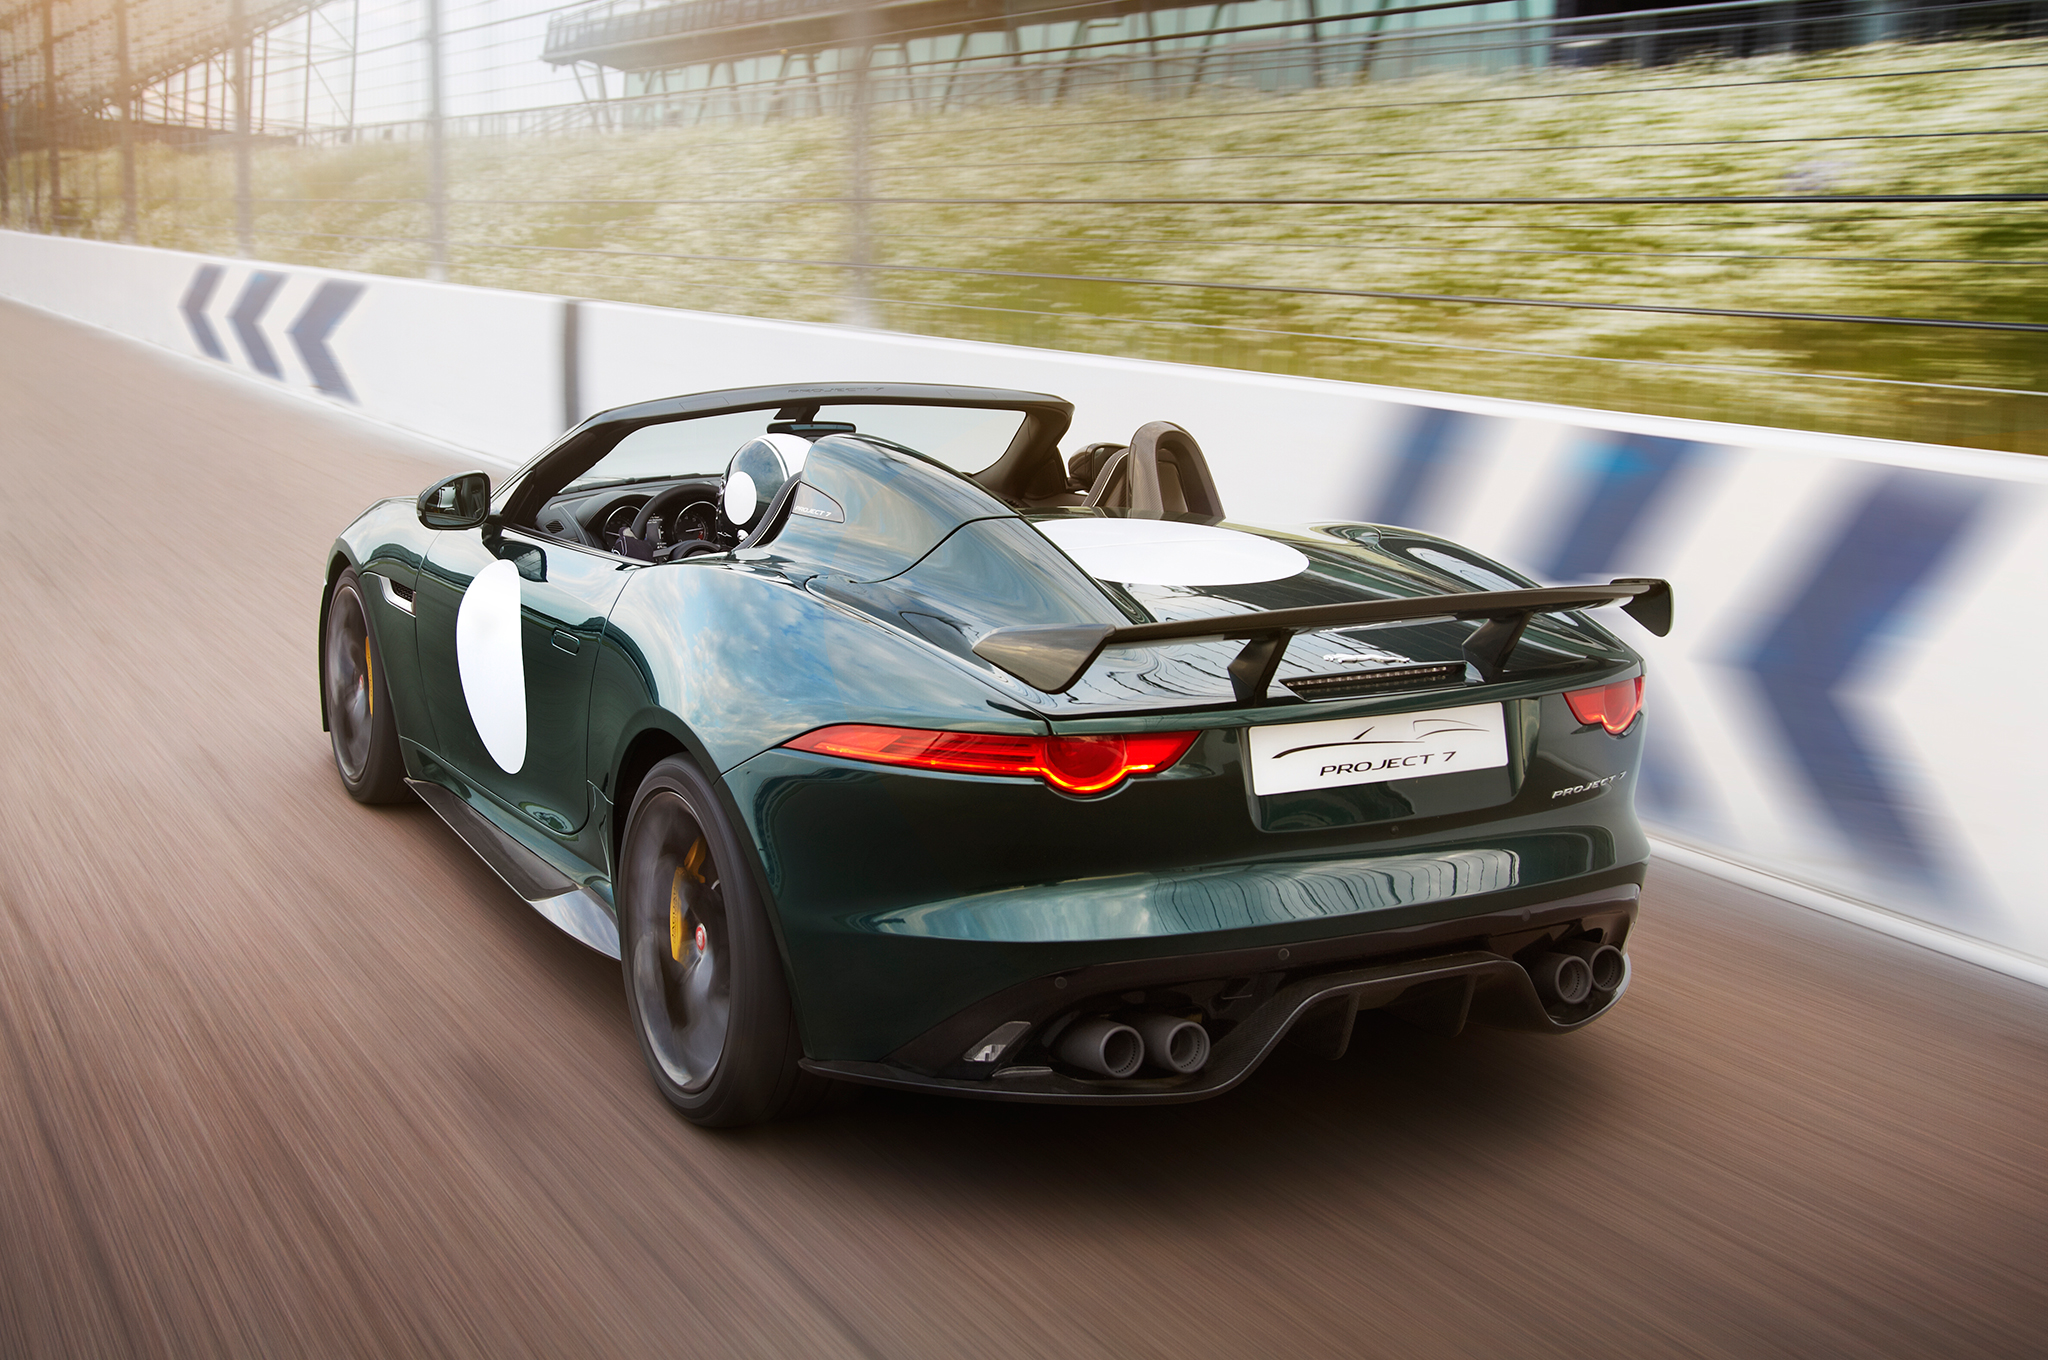 567 hp jaguar f type project 7 production model revealed [ 2048 x 1360 Pixel ]